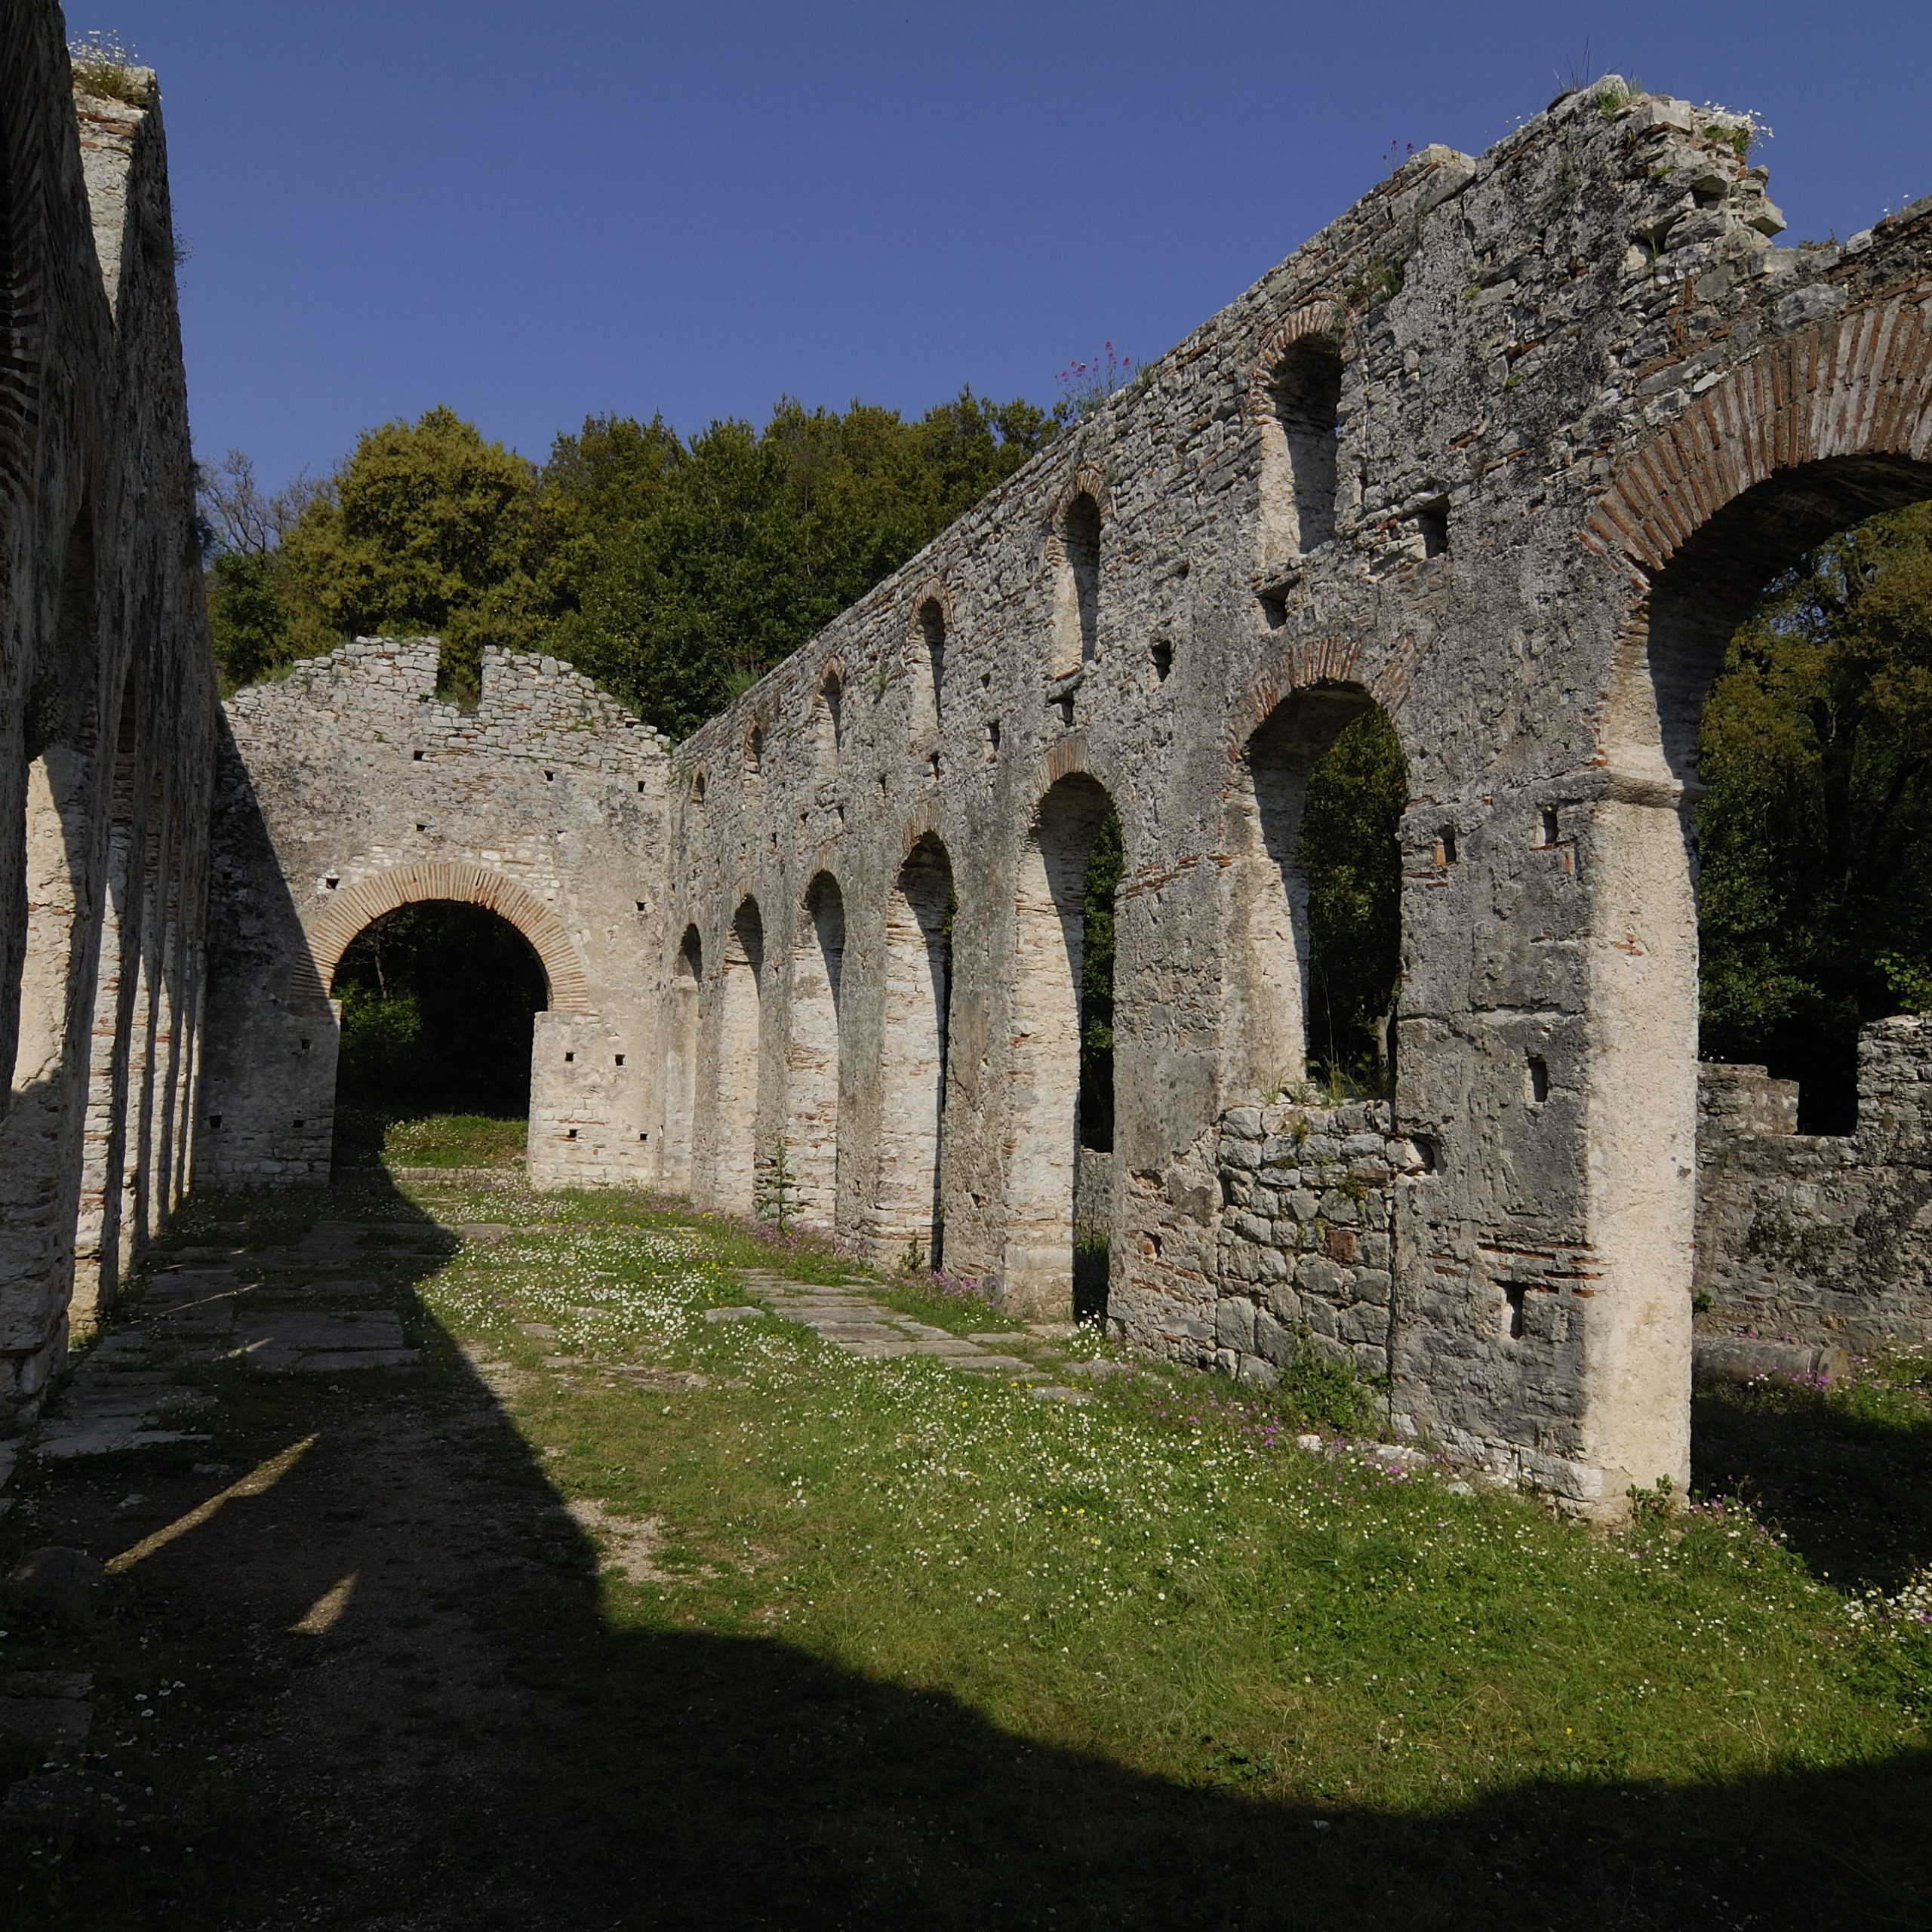 DAY 3: Along the beautiful Albanian Riviera - once upon a time in Butrint - Saranda overnight